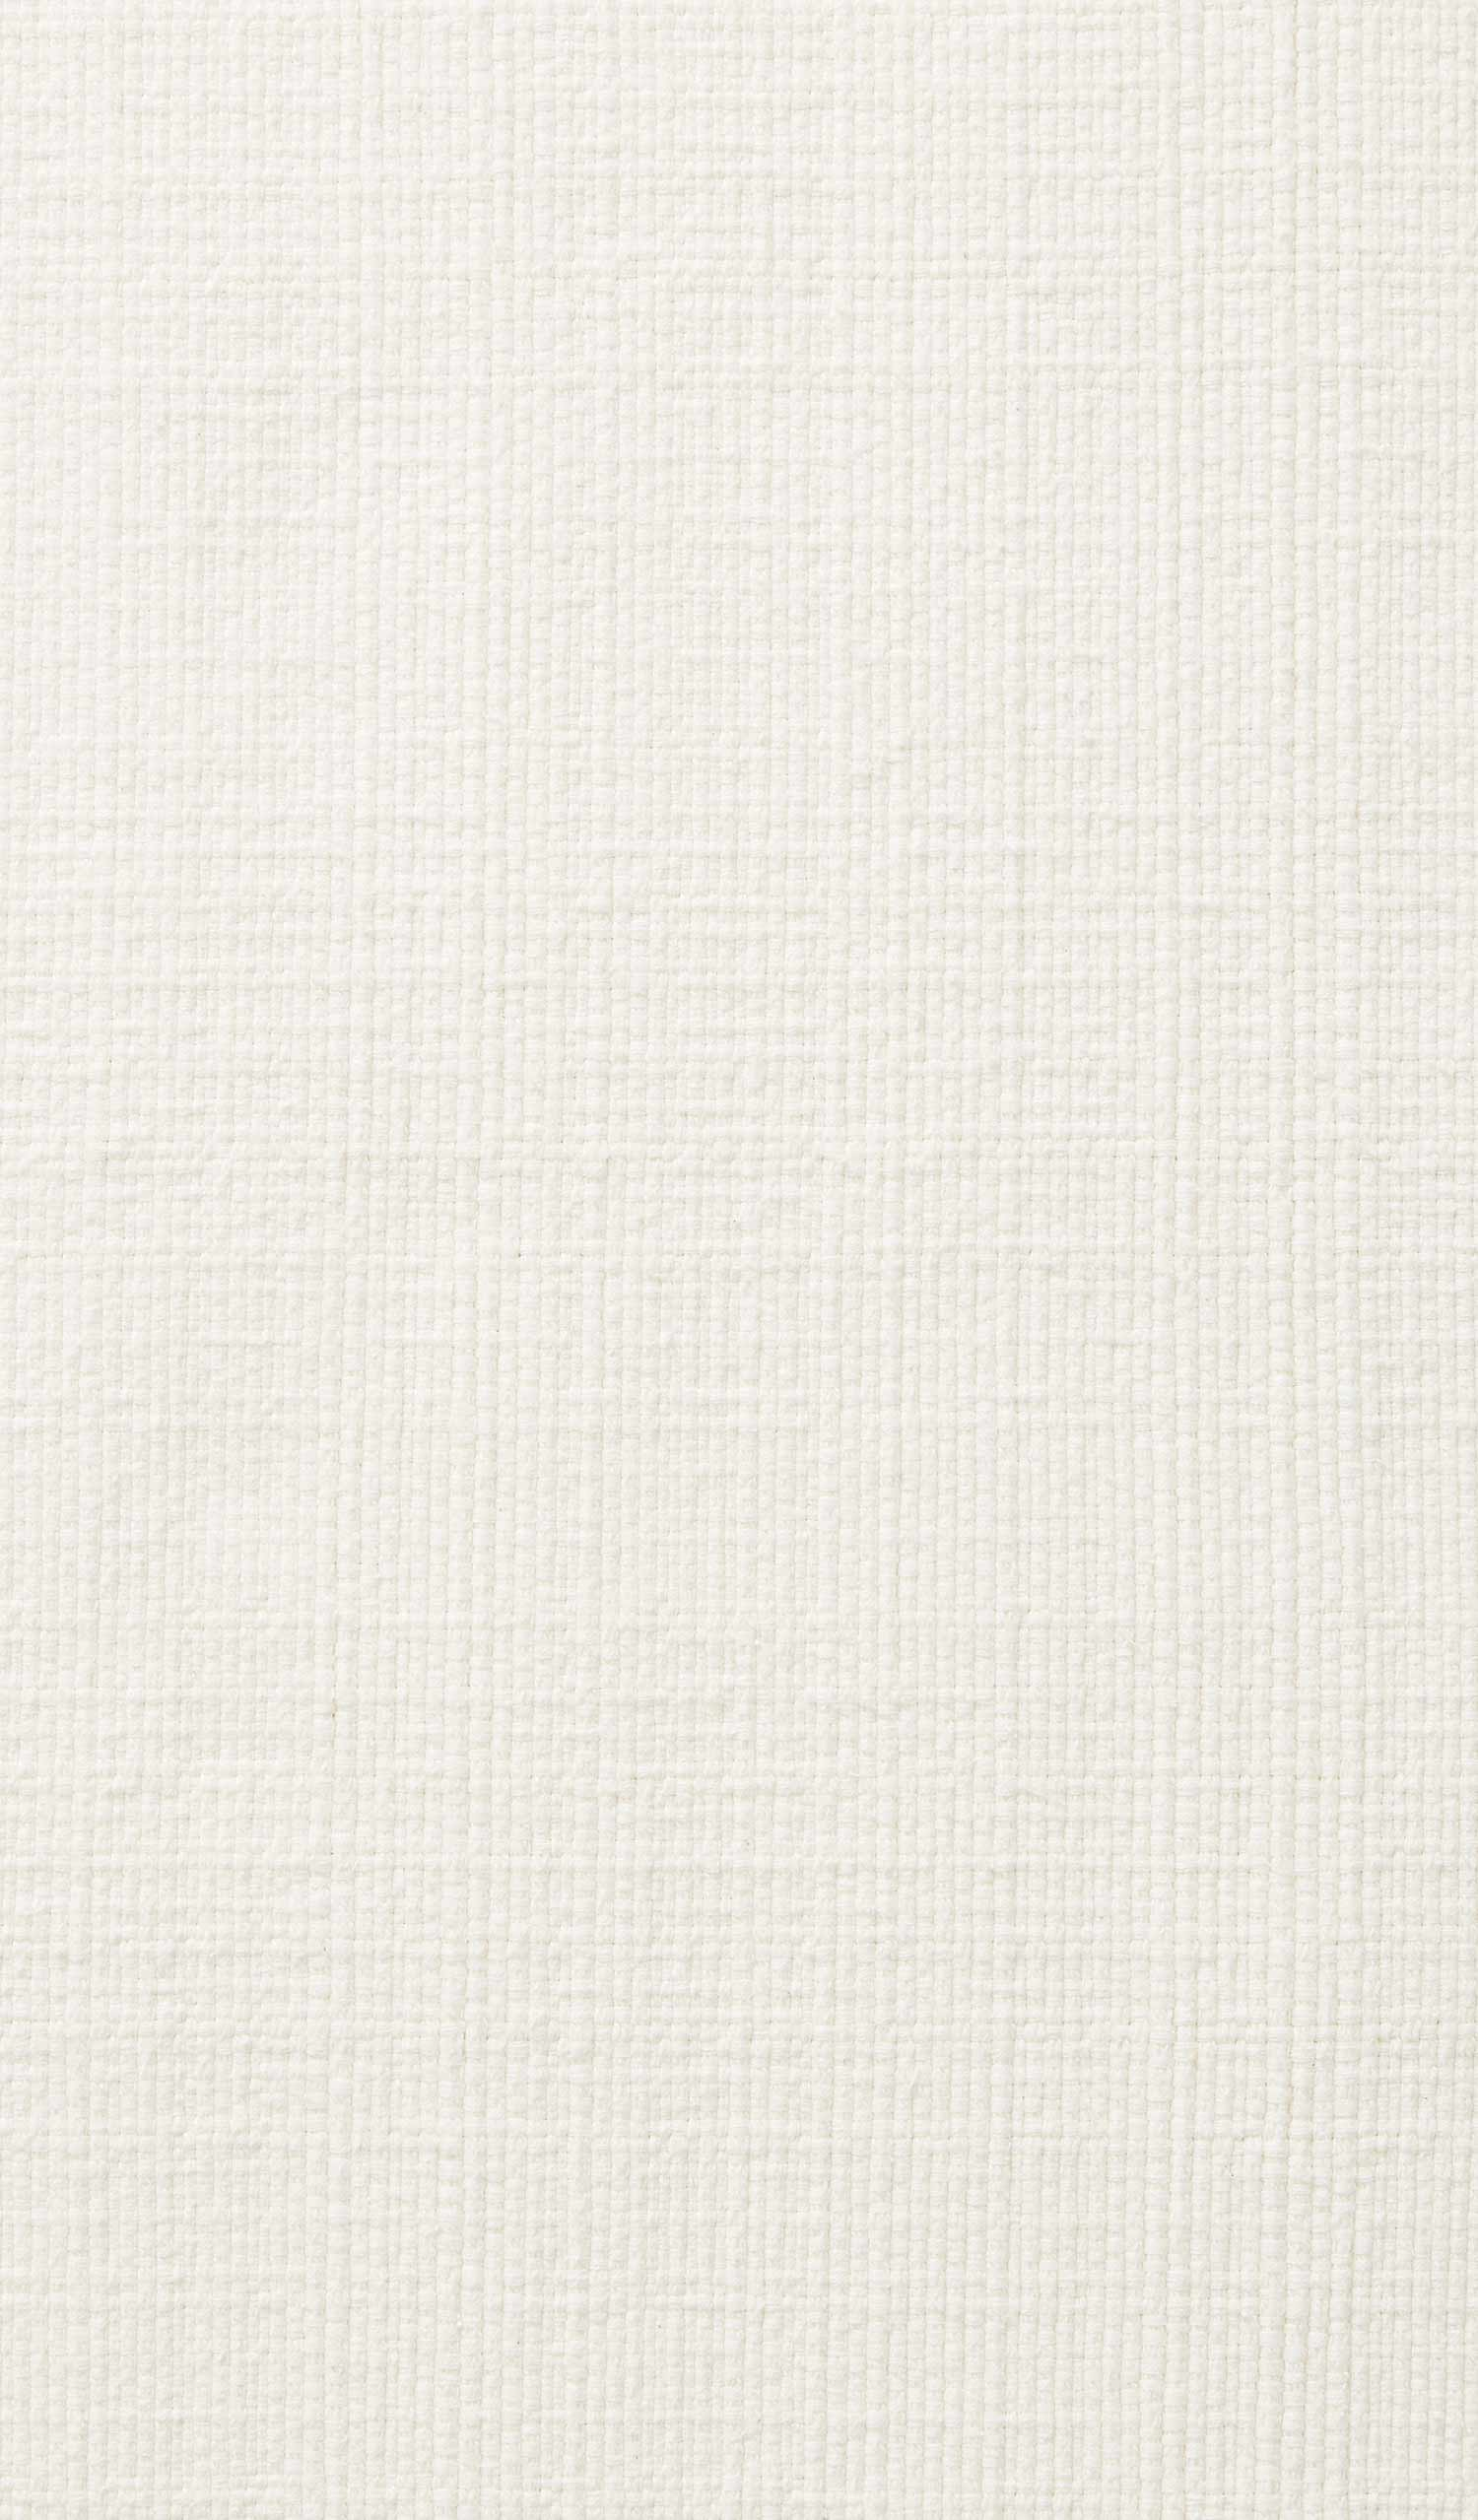 swatch of natural woven bleached white